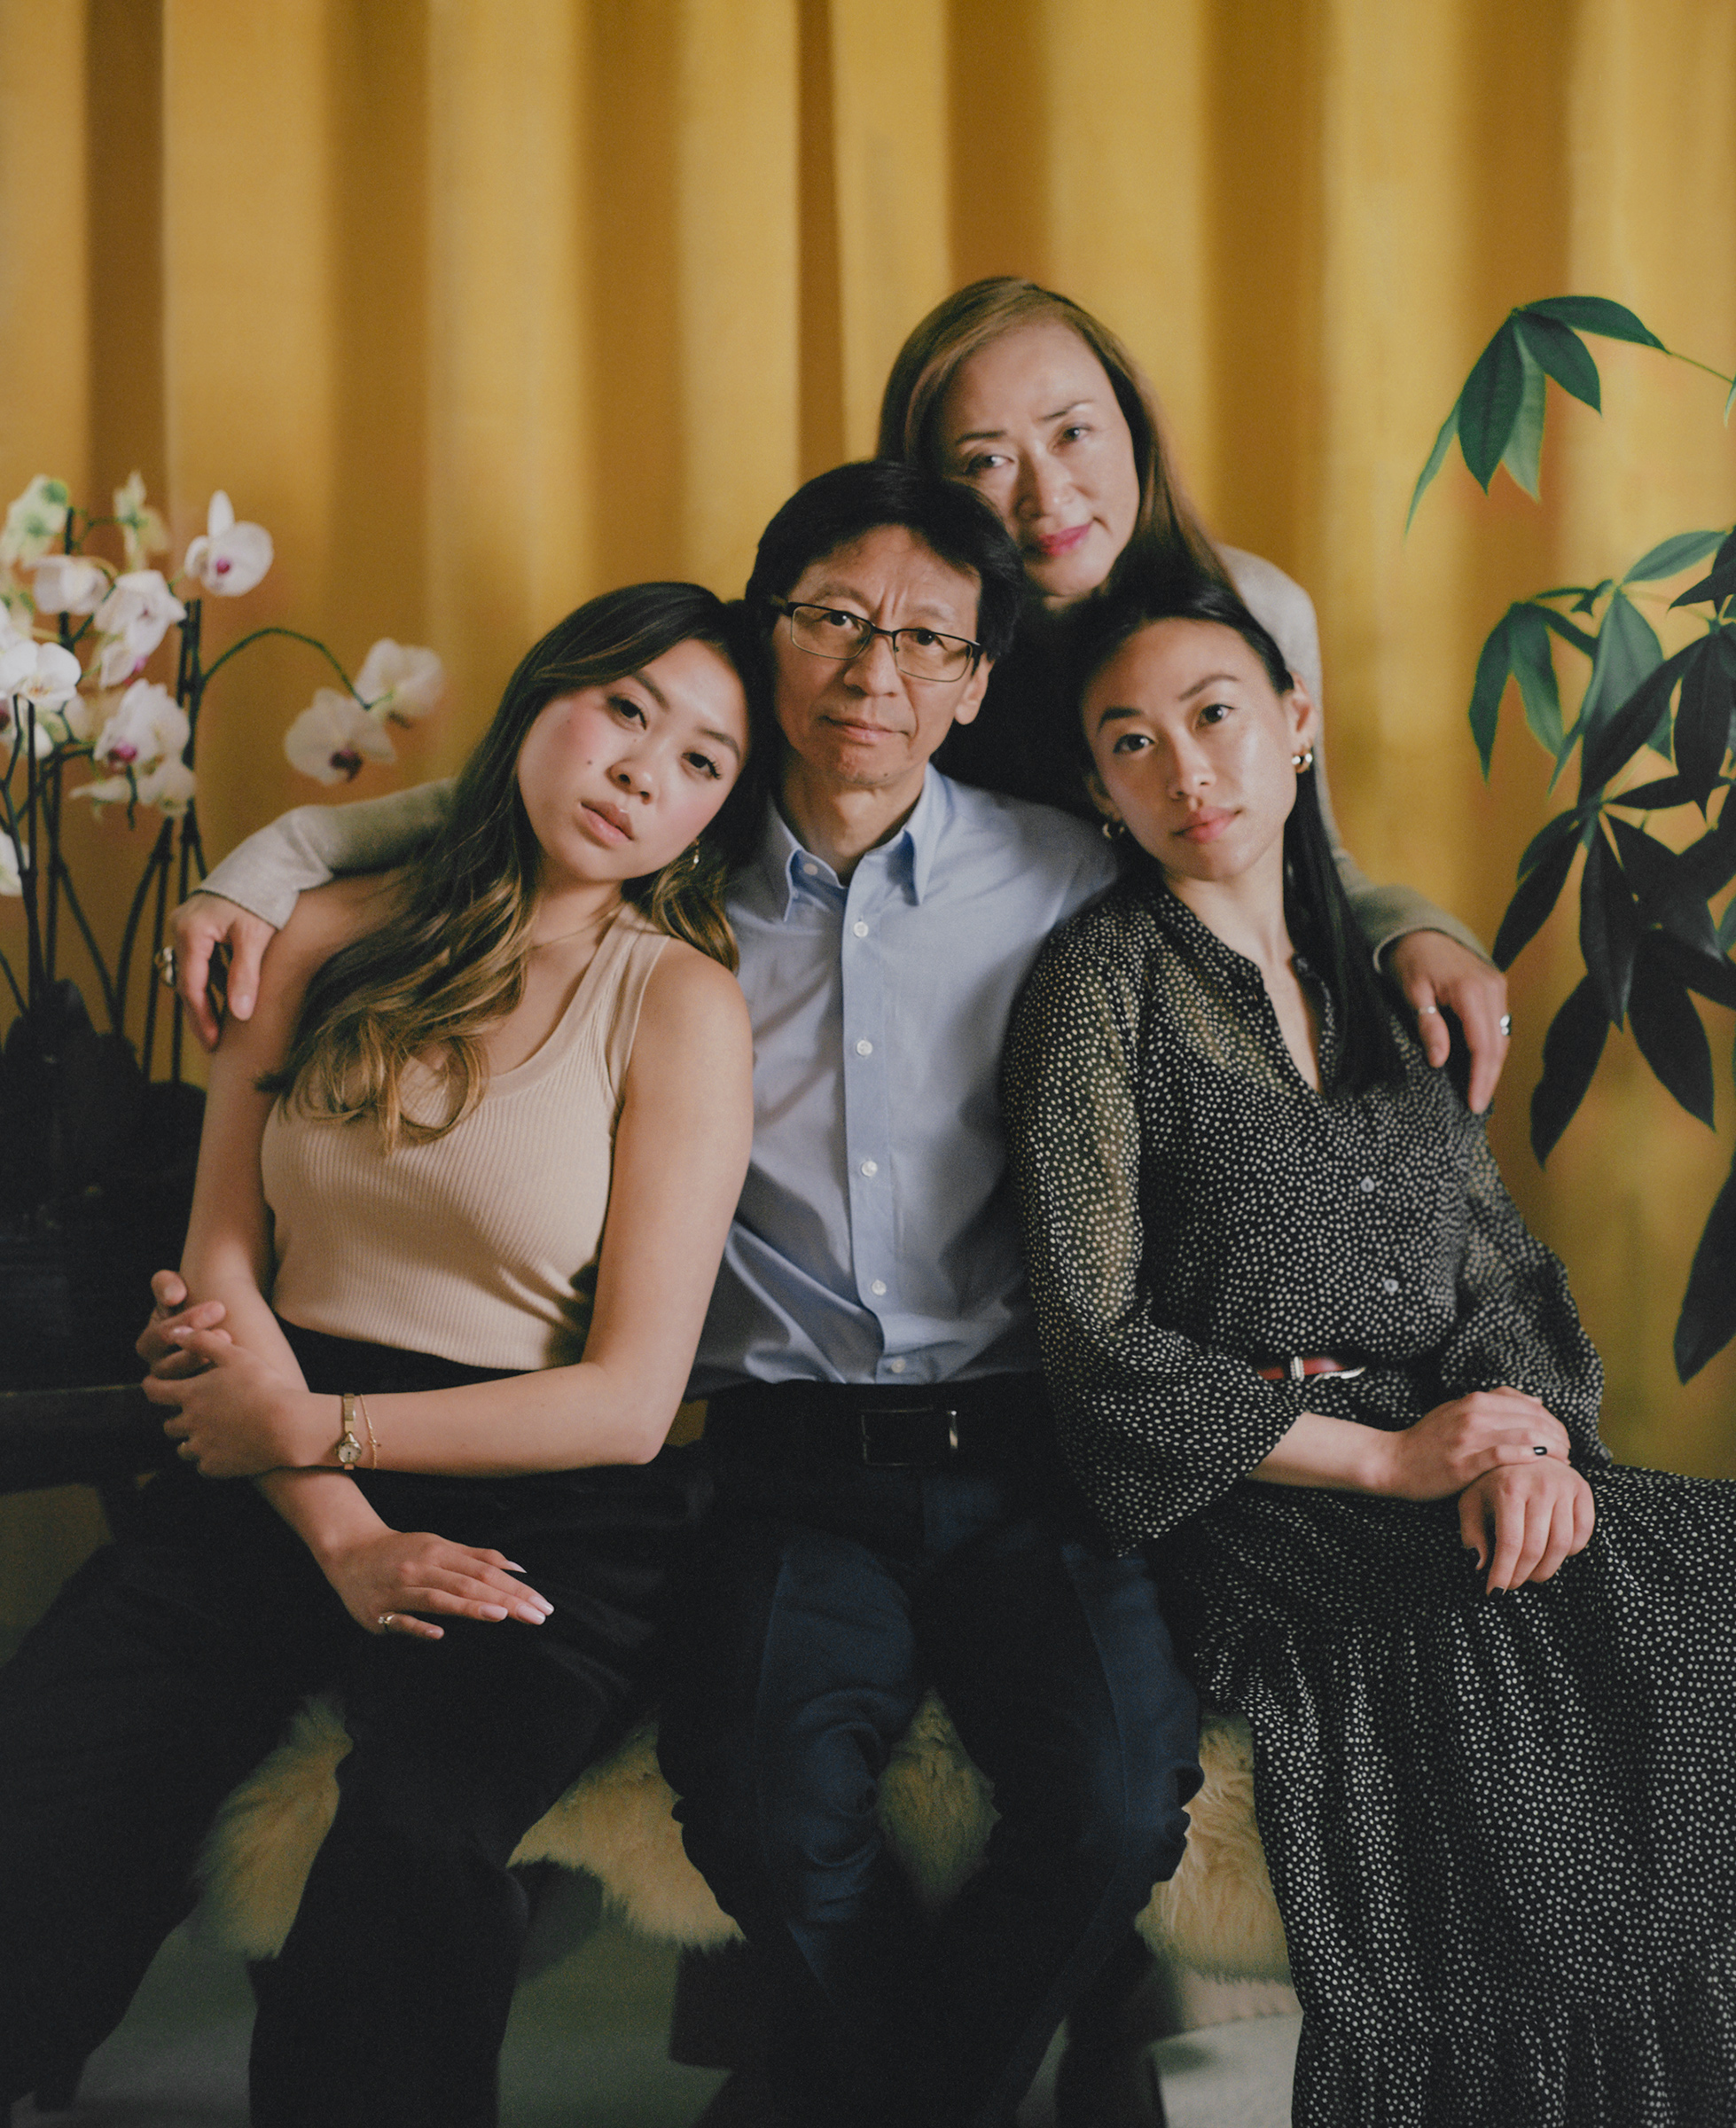 """'HE ISN'T A VICTIM.' Carl Chan, center, sits with his daughters Crystal Chan, right, and Emerald Chan, left, and his wife Eleanore Tang, above, at home in Alameda, Calif., on May 18. As president of the Oakland Chinatown Chamber of Commerce, Carl, 62, has long made the protection of local elders a priority in his work. When attacks against Asian Americans started increasing in 2020, he ramped up his efforts, handing out whistles and air horns to anyone on the street who would take them. """"We respect the elderly,"""" he says. """"To me, to us, to our community, it is the worst when they are attacking our seniors."""" Carl's daughters worried about their father's safety as he spent his time in areas where incidents of violence had taken place. """"What he's doing is so important,"""" Crystal, 28, remembers thinking. """"While there is a risk, we just can't keep thinking about that."""" On April 29, when Carl was on his way to visit an older Asian man who had been assaulted on a bus, he also fell victim to an unprovoked attack. He remembers hearing a man screaming and yelling a racial slur. Then he describes """"a quick punch to my head."""" Crystal said the emotions overwhelmed her quickly; first shock, then anger and sadness. She and her sister, who live across the country in New York, flew home as soon as they could. """"It's not easy for our family, especially [when] the ones close to you become the victim,"""" Eleanore says. """"It's so hard. It's so hard."""" But Carl, scraped and bruised, emerged from the attack even more determined. On May 15, he walked side by side with his daughters and wife in a """"Unity Against Hate"""" rally that he helped organize. """"While he was physically assaulted, he isn't a victim,"""" says Emerald, 24. """"He's showing that he's strong."""""""